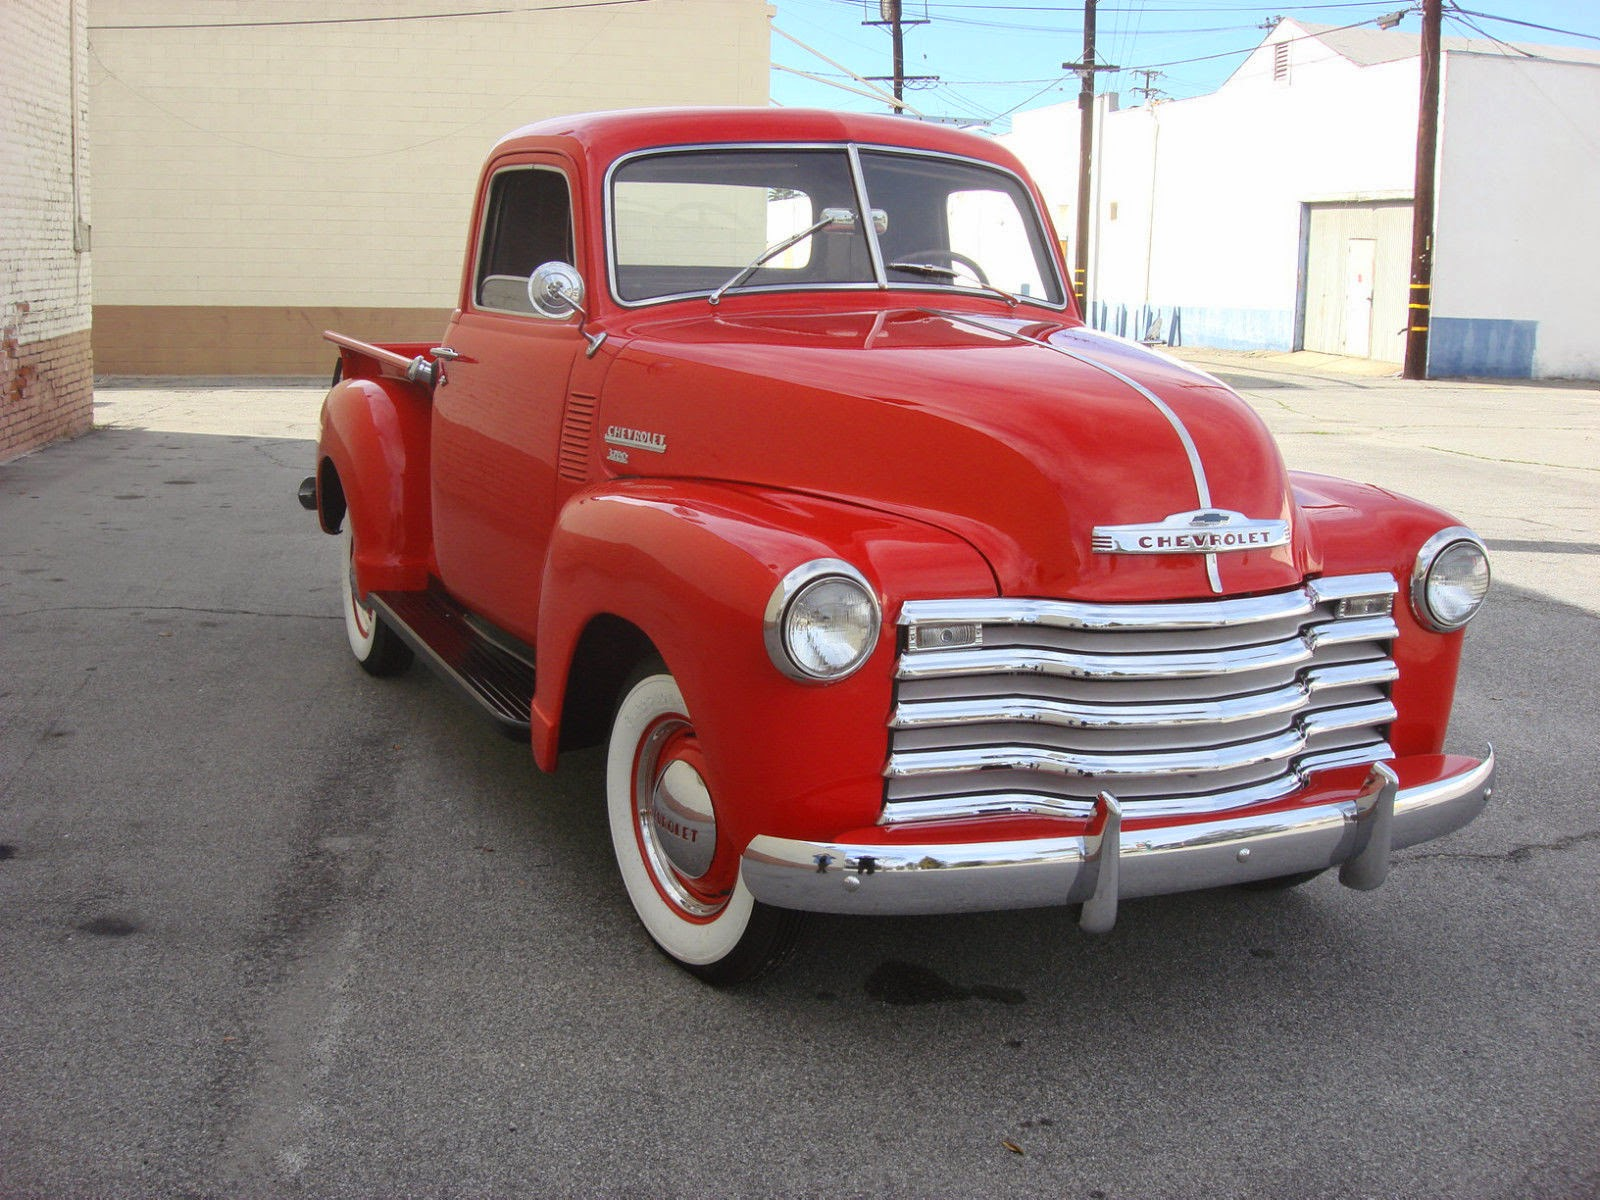 All American Classic Cars: 1950 Chevrolet 3100 Pickup Truck